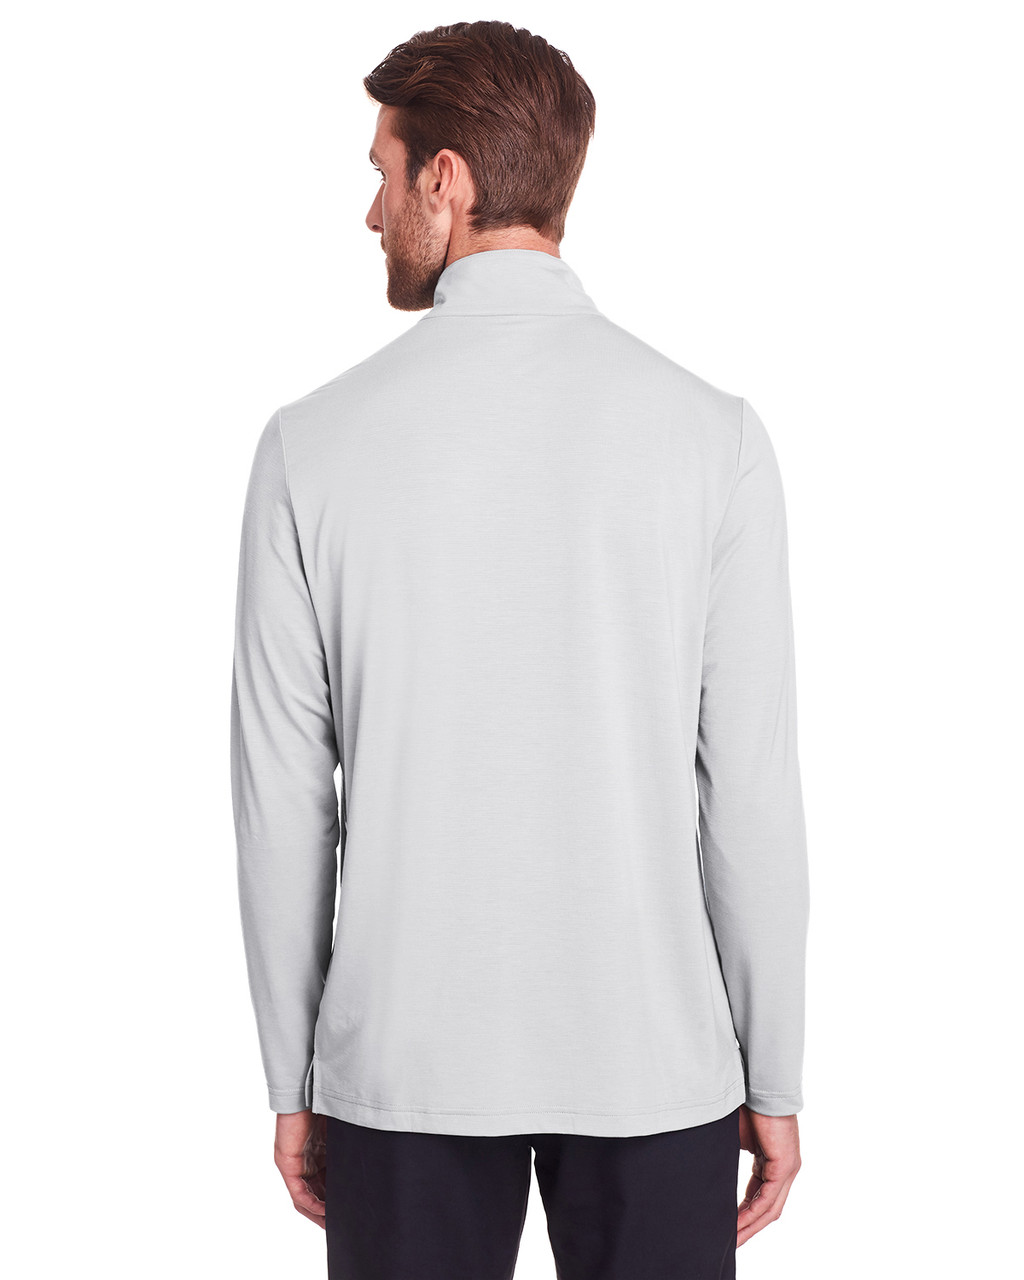 Platinum - Back, NE400 North End Men's Jaq Snap-Up Stretch Performance Pullover Long Sleeve Shirt | BlankClothing.ca